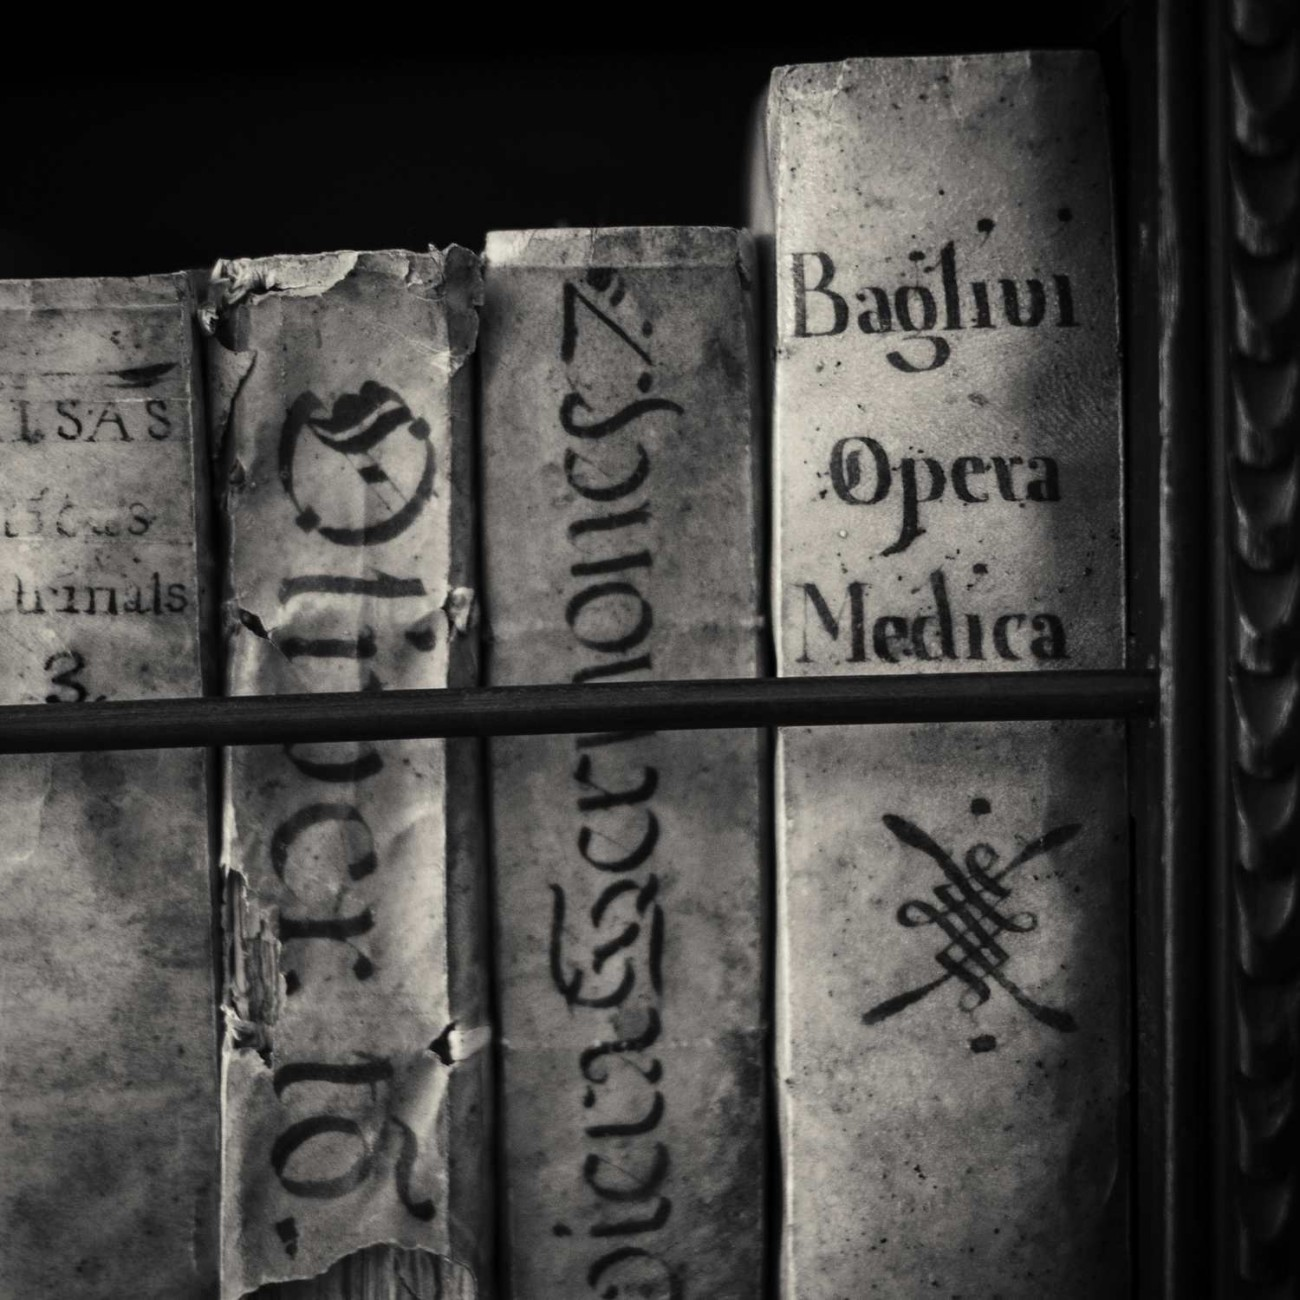 Four vellum books, Charterhouse library, Valedmossa, Spain, 2014